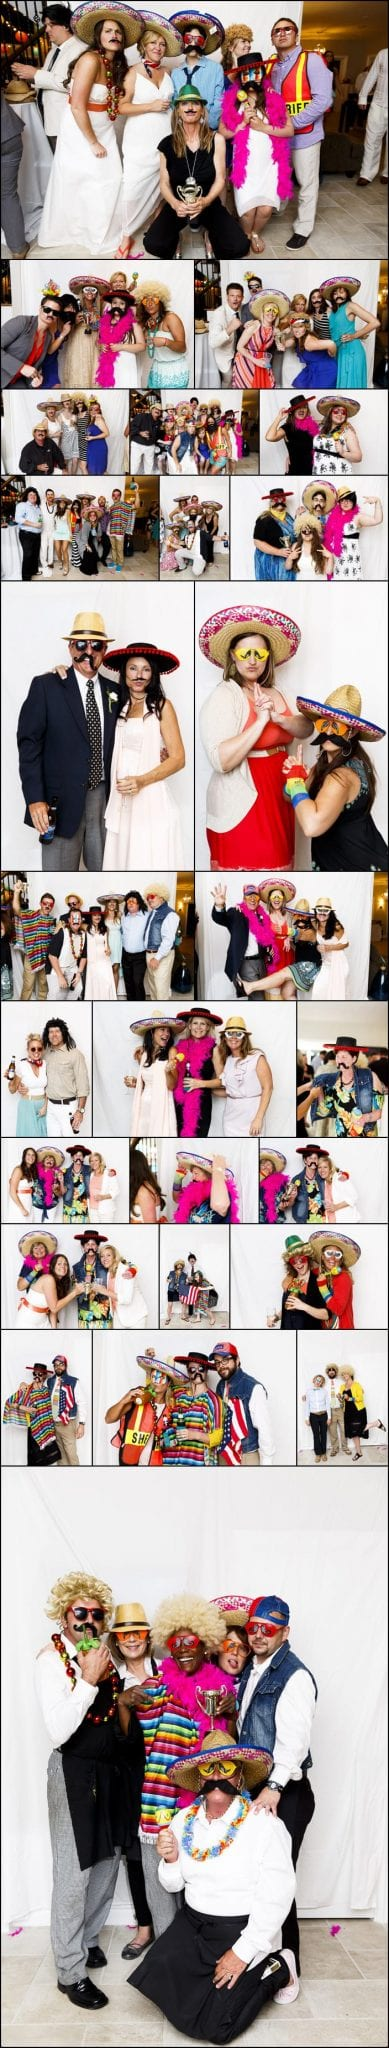 Robyn_and_Staci - part 3 - the mock photo booth